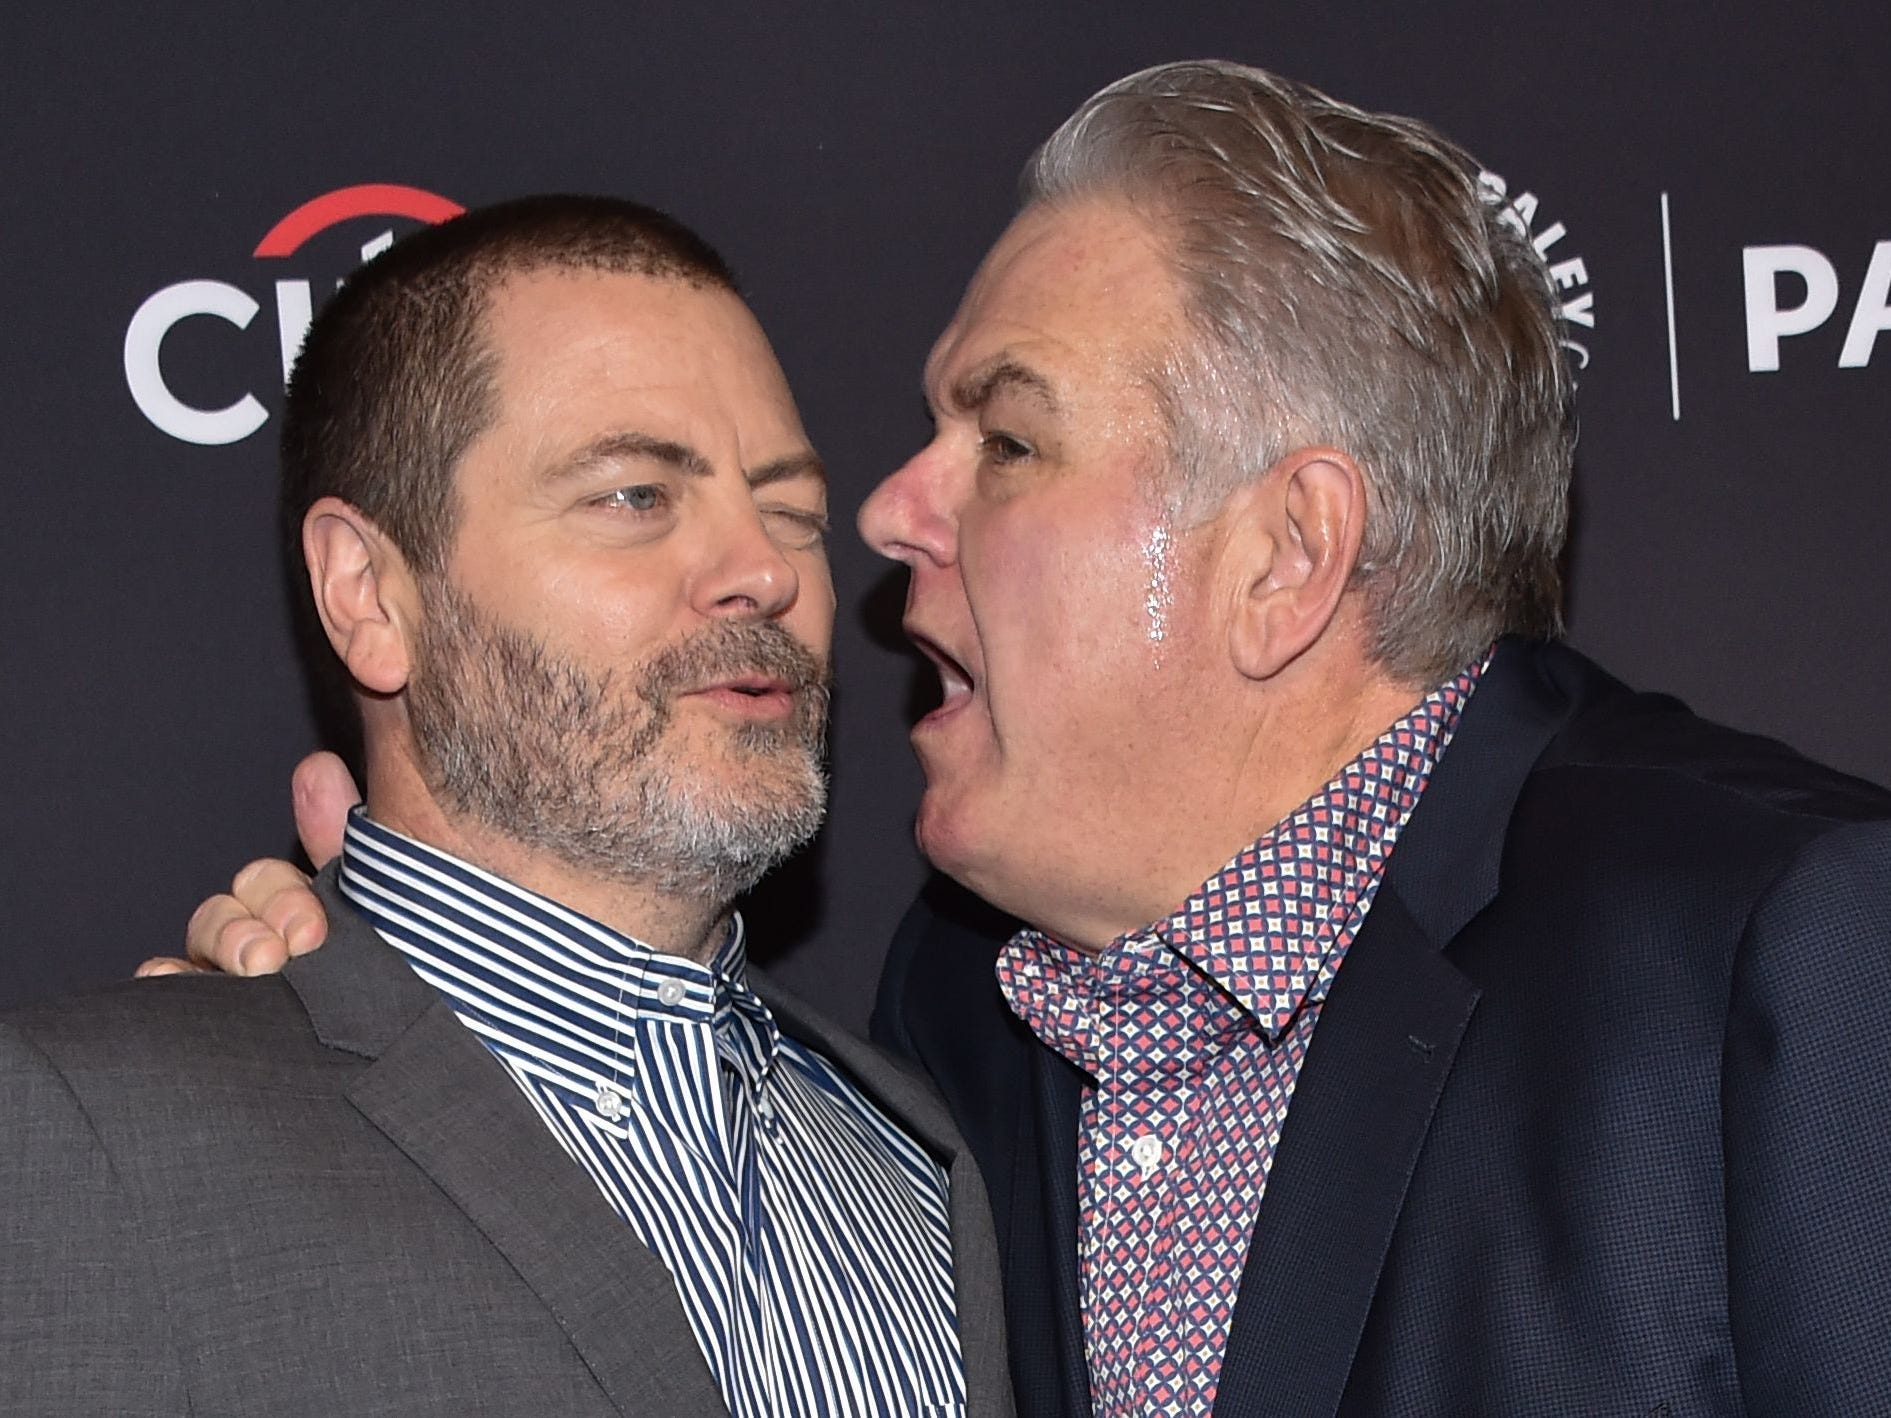 "But no ""Parks and Rec"" reunion would  be complete without Ron Swanson. Here, Nick Offerman, left, gets an earful from co-star Jim O'Heir, who played Jerry Gergich."